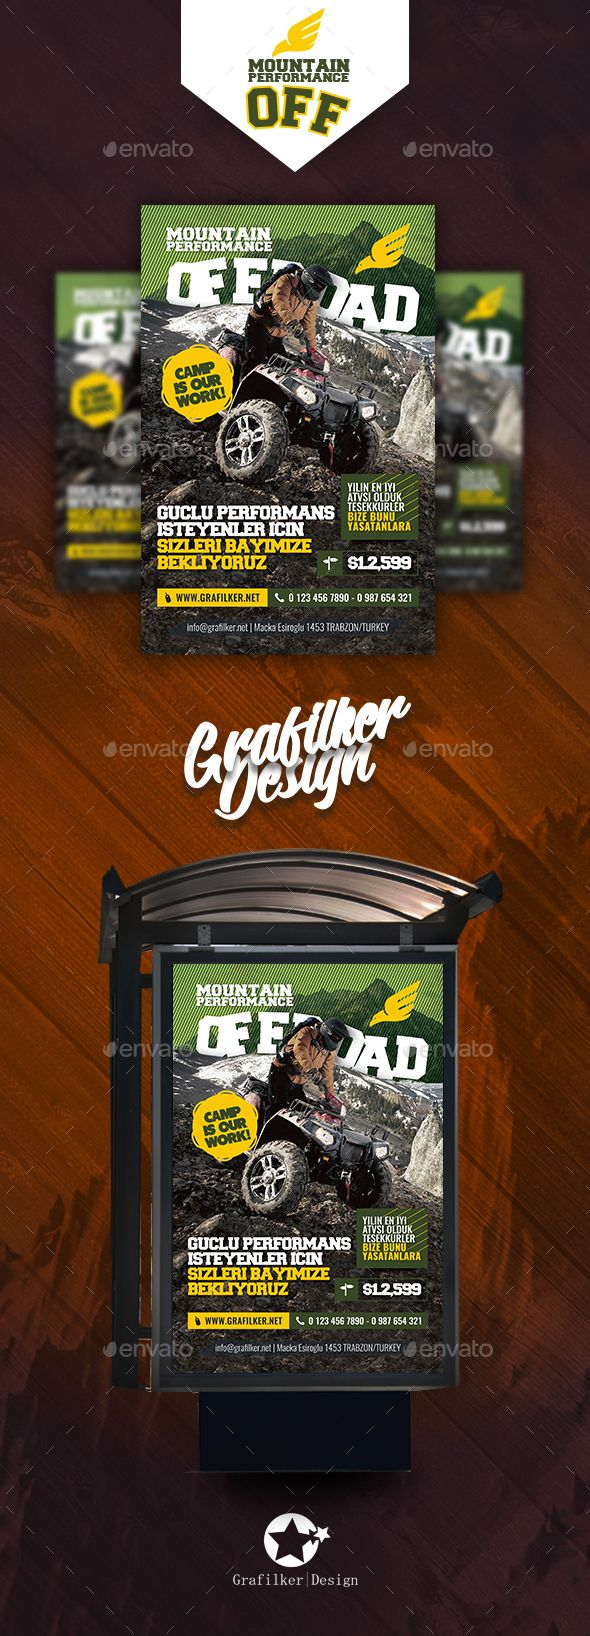 Pin By Fdesign Nerd On Poster Templates Poster Template Poster Design Flyer Template